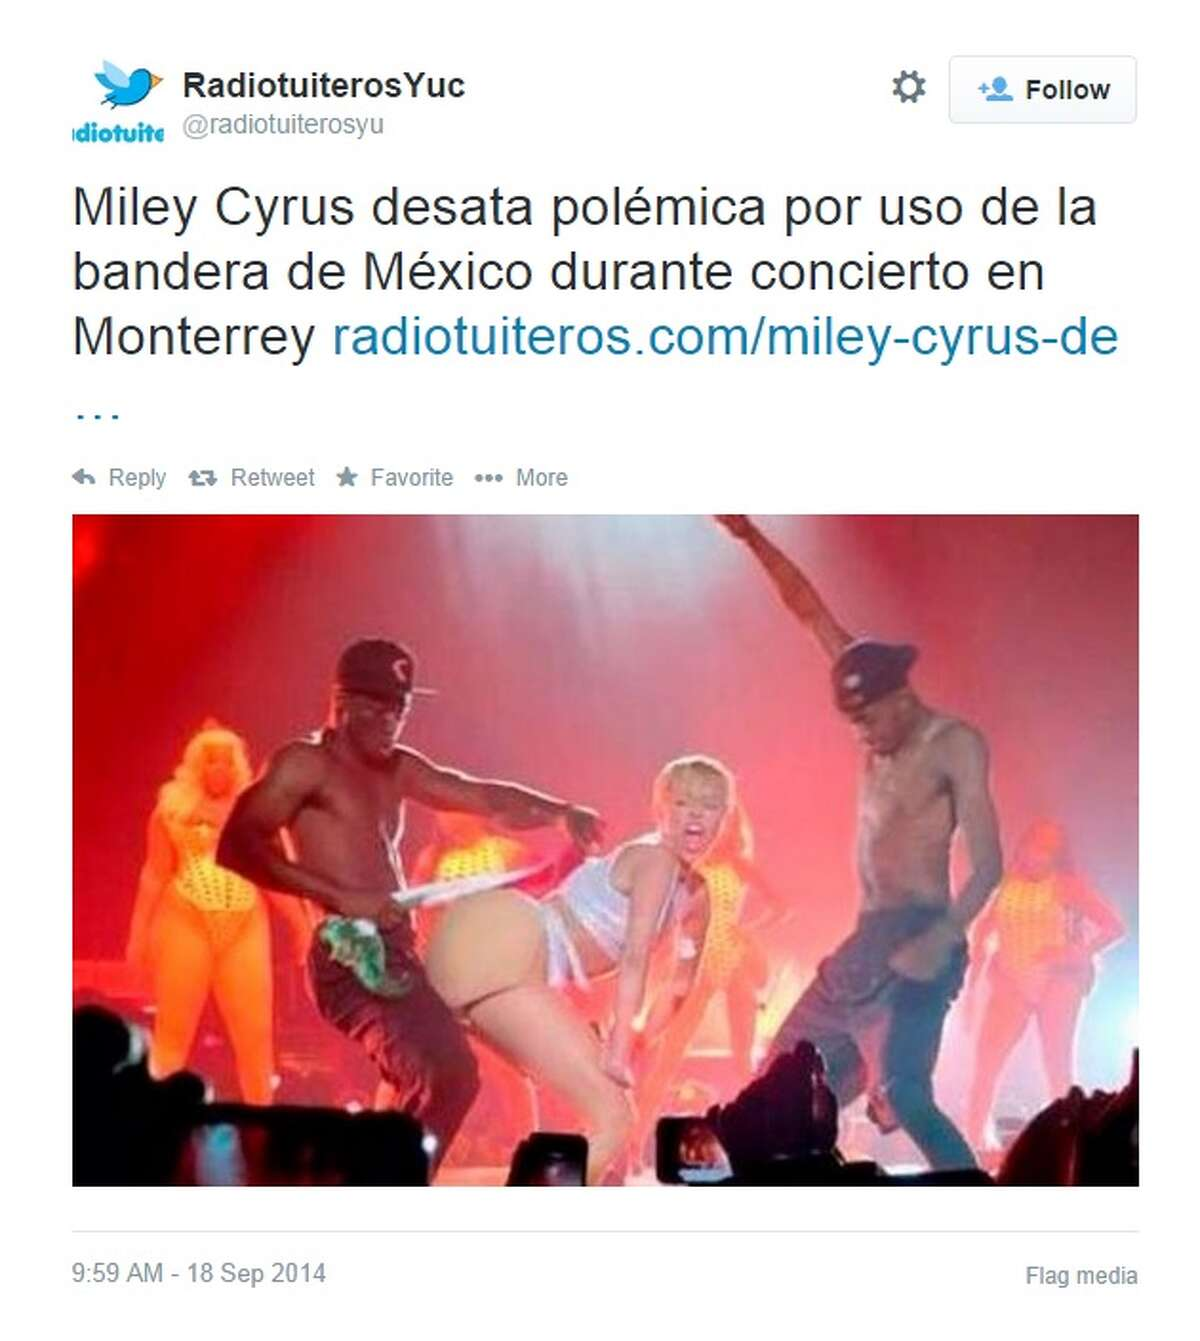 Pop star Miley Cyrus is under a criminal investigation for desecrating the Mexican flag on stage in Monterrey on September 16, 2014, which is Mexican Independence Day.